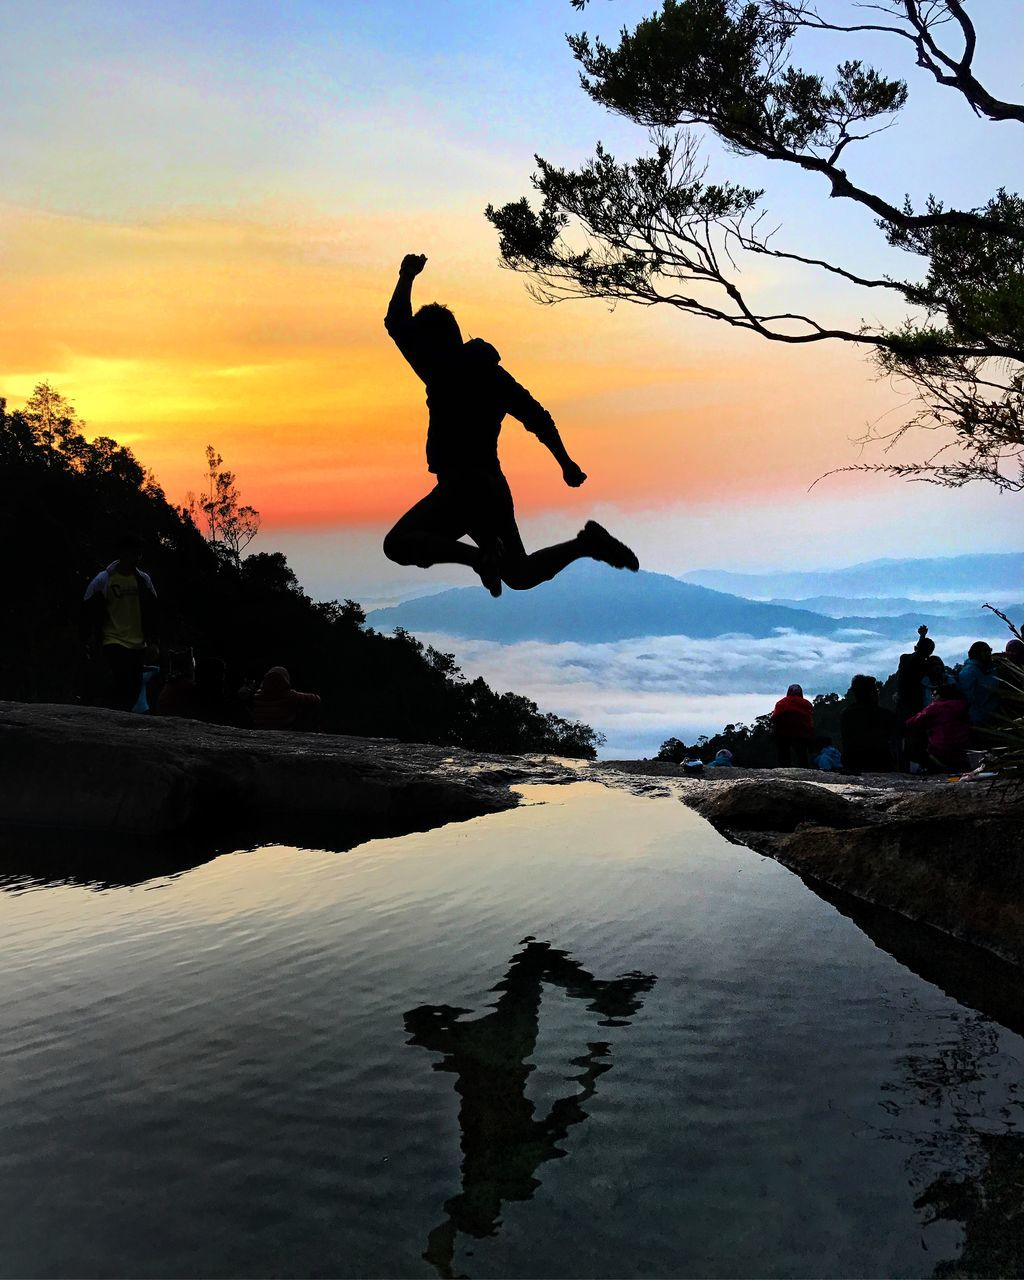 jumping, mid-air, full length, silhouette, water, sunset, energetic, one person, sea, real people, leisure activity, motion, outdoors, men, sky, nature, excitement, stunt, day, people